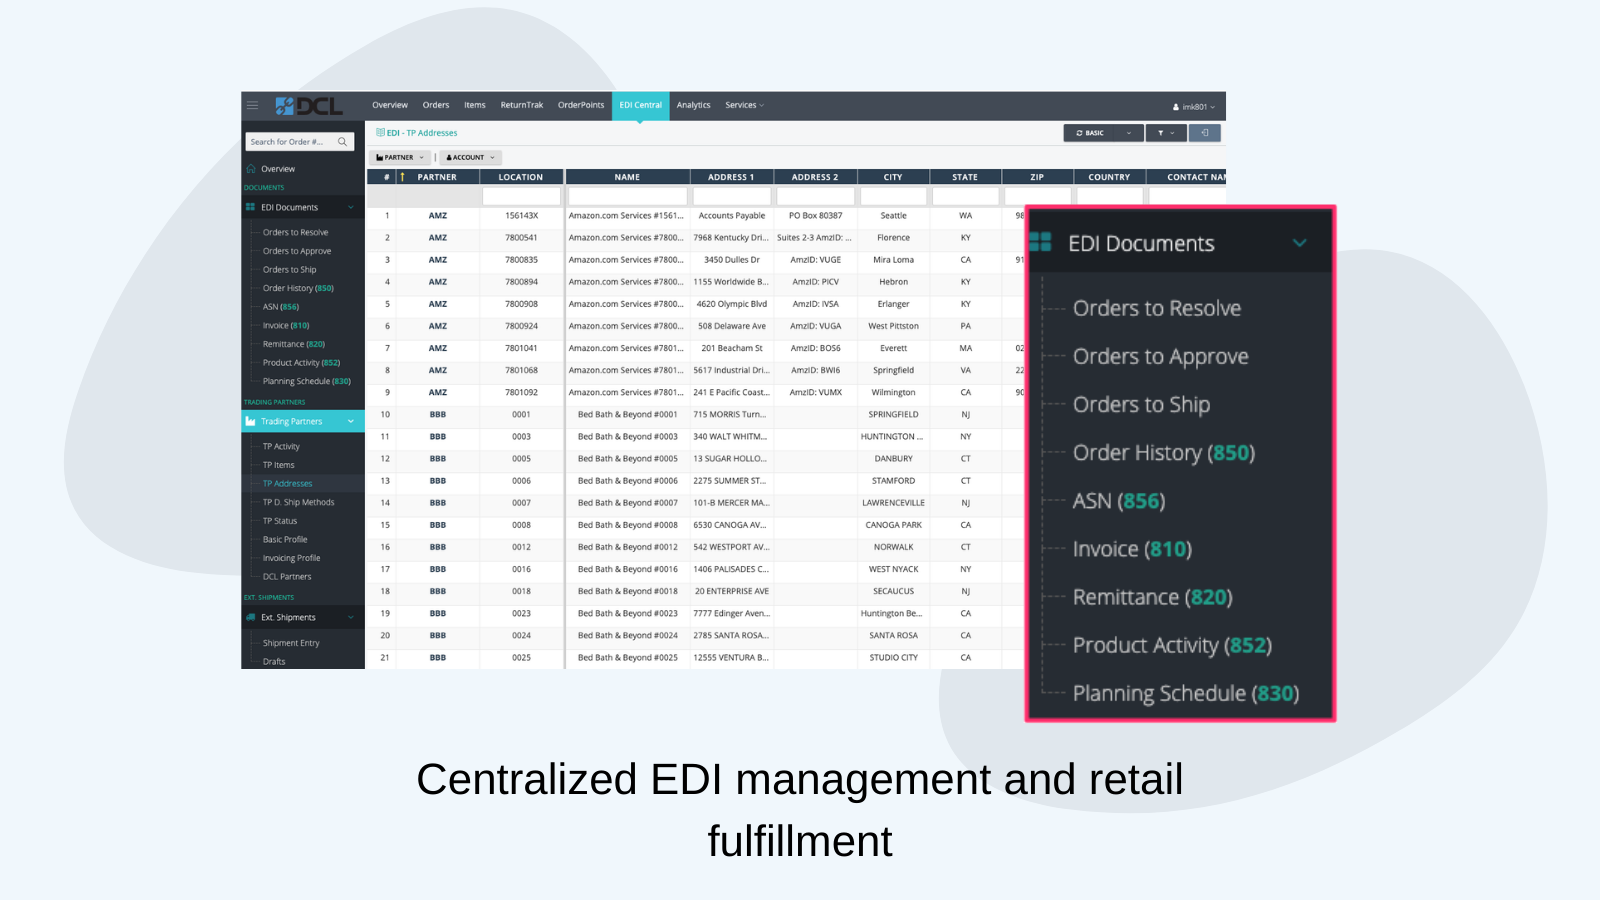 Retail fulfillment and EDI management